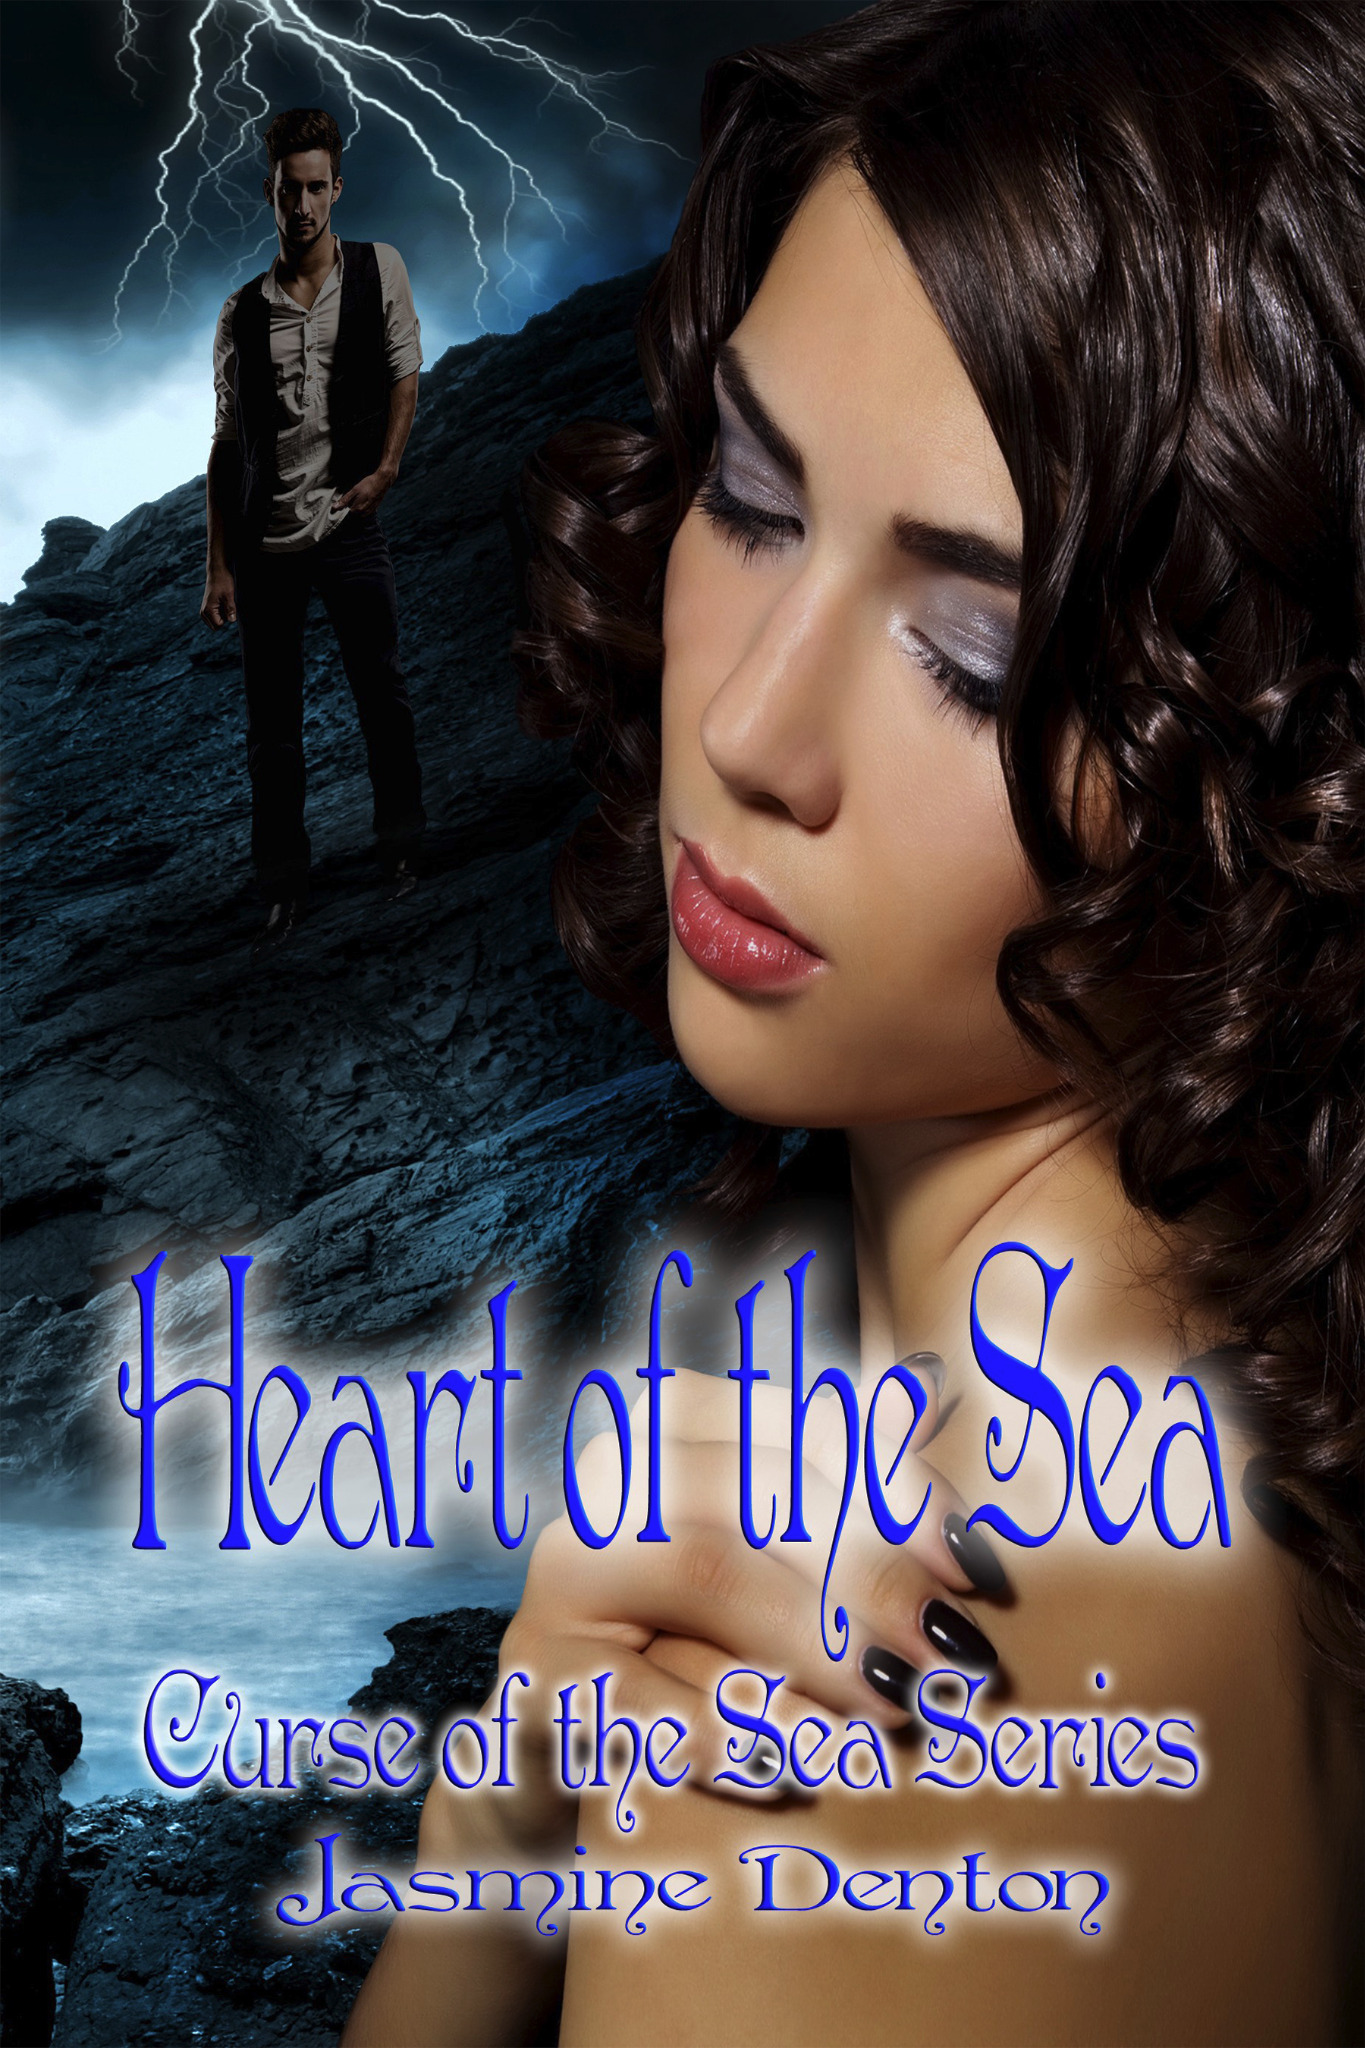 Heart of the Sea - Curse of the Sea Series Book 3